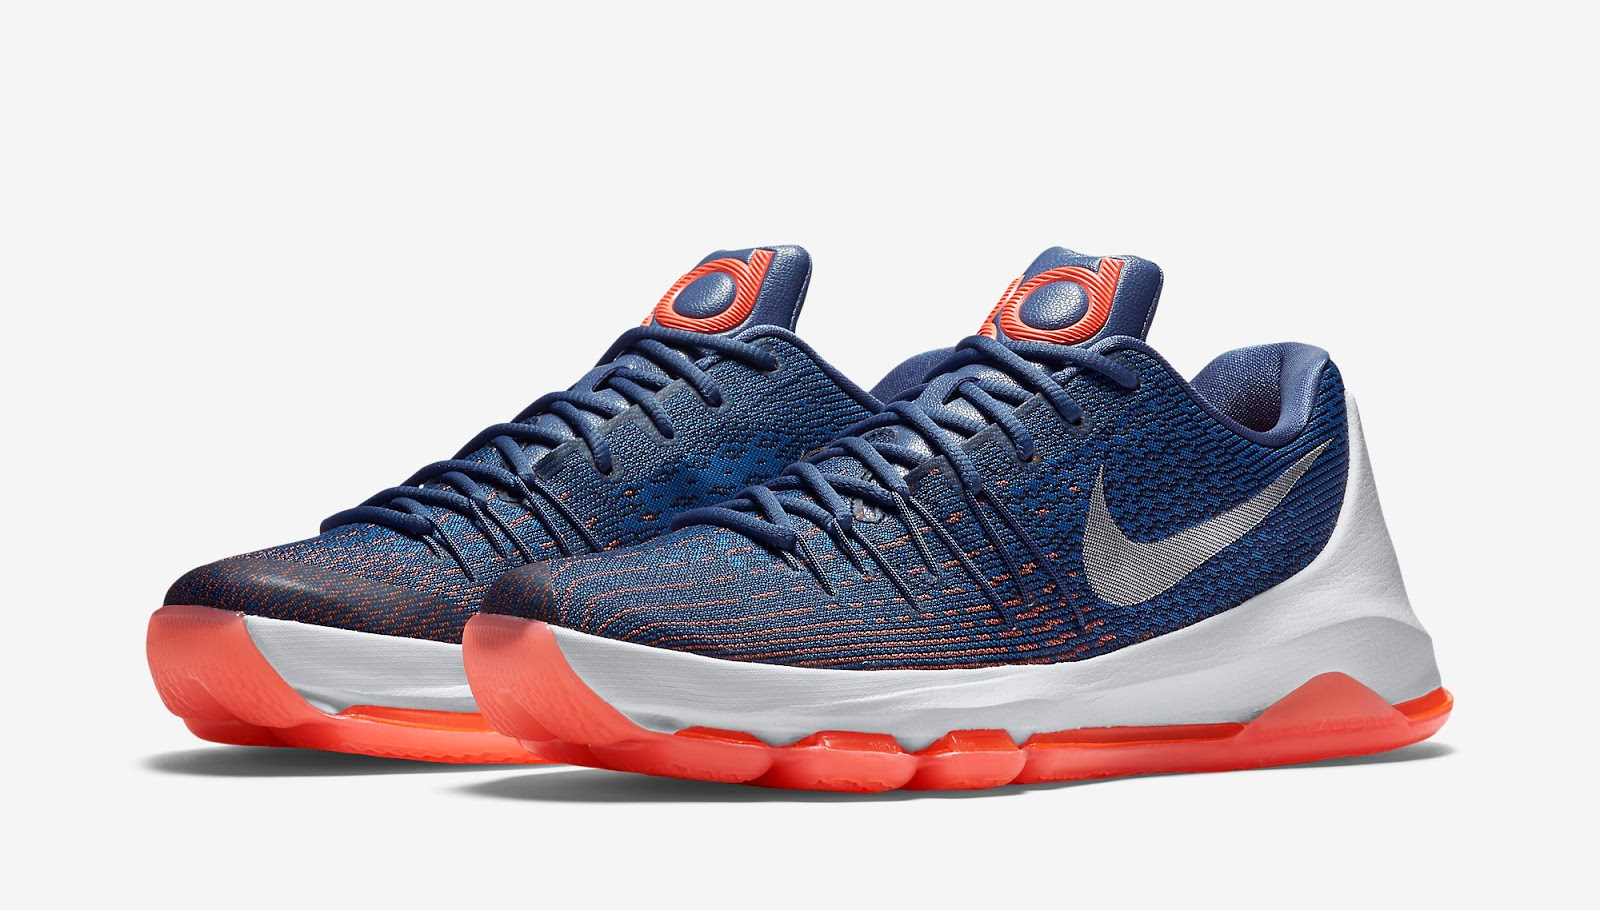 Another Oklahoma City Thunder-inspired colorway of the Nike KD 8. This pair  comes in ocean fog ccac7a27e